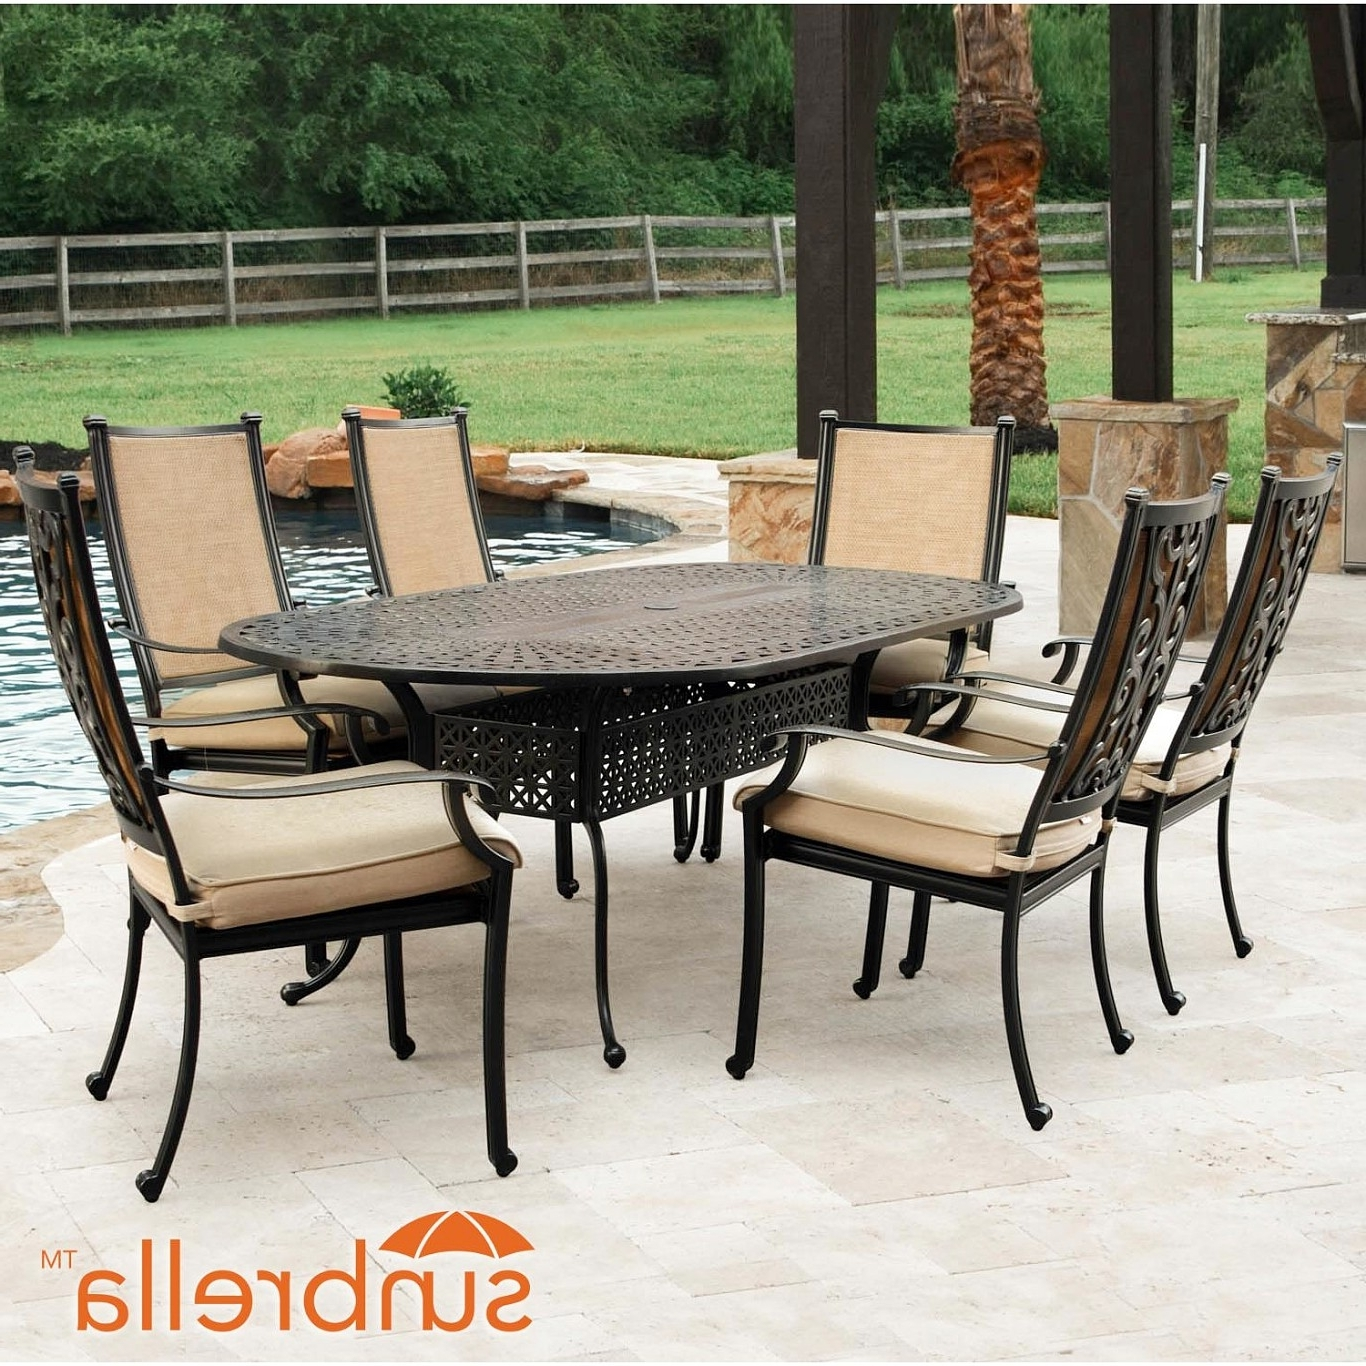 Best And Newest Sunbrella Patio Furniture Covers Sunbrella Chaise Lounge Sunbrella Pertaining To Macys Outdoor Chaise Lounge Chairs (View 2 of 15)